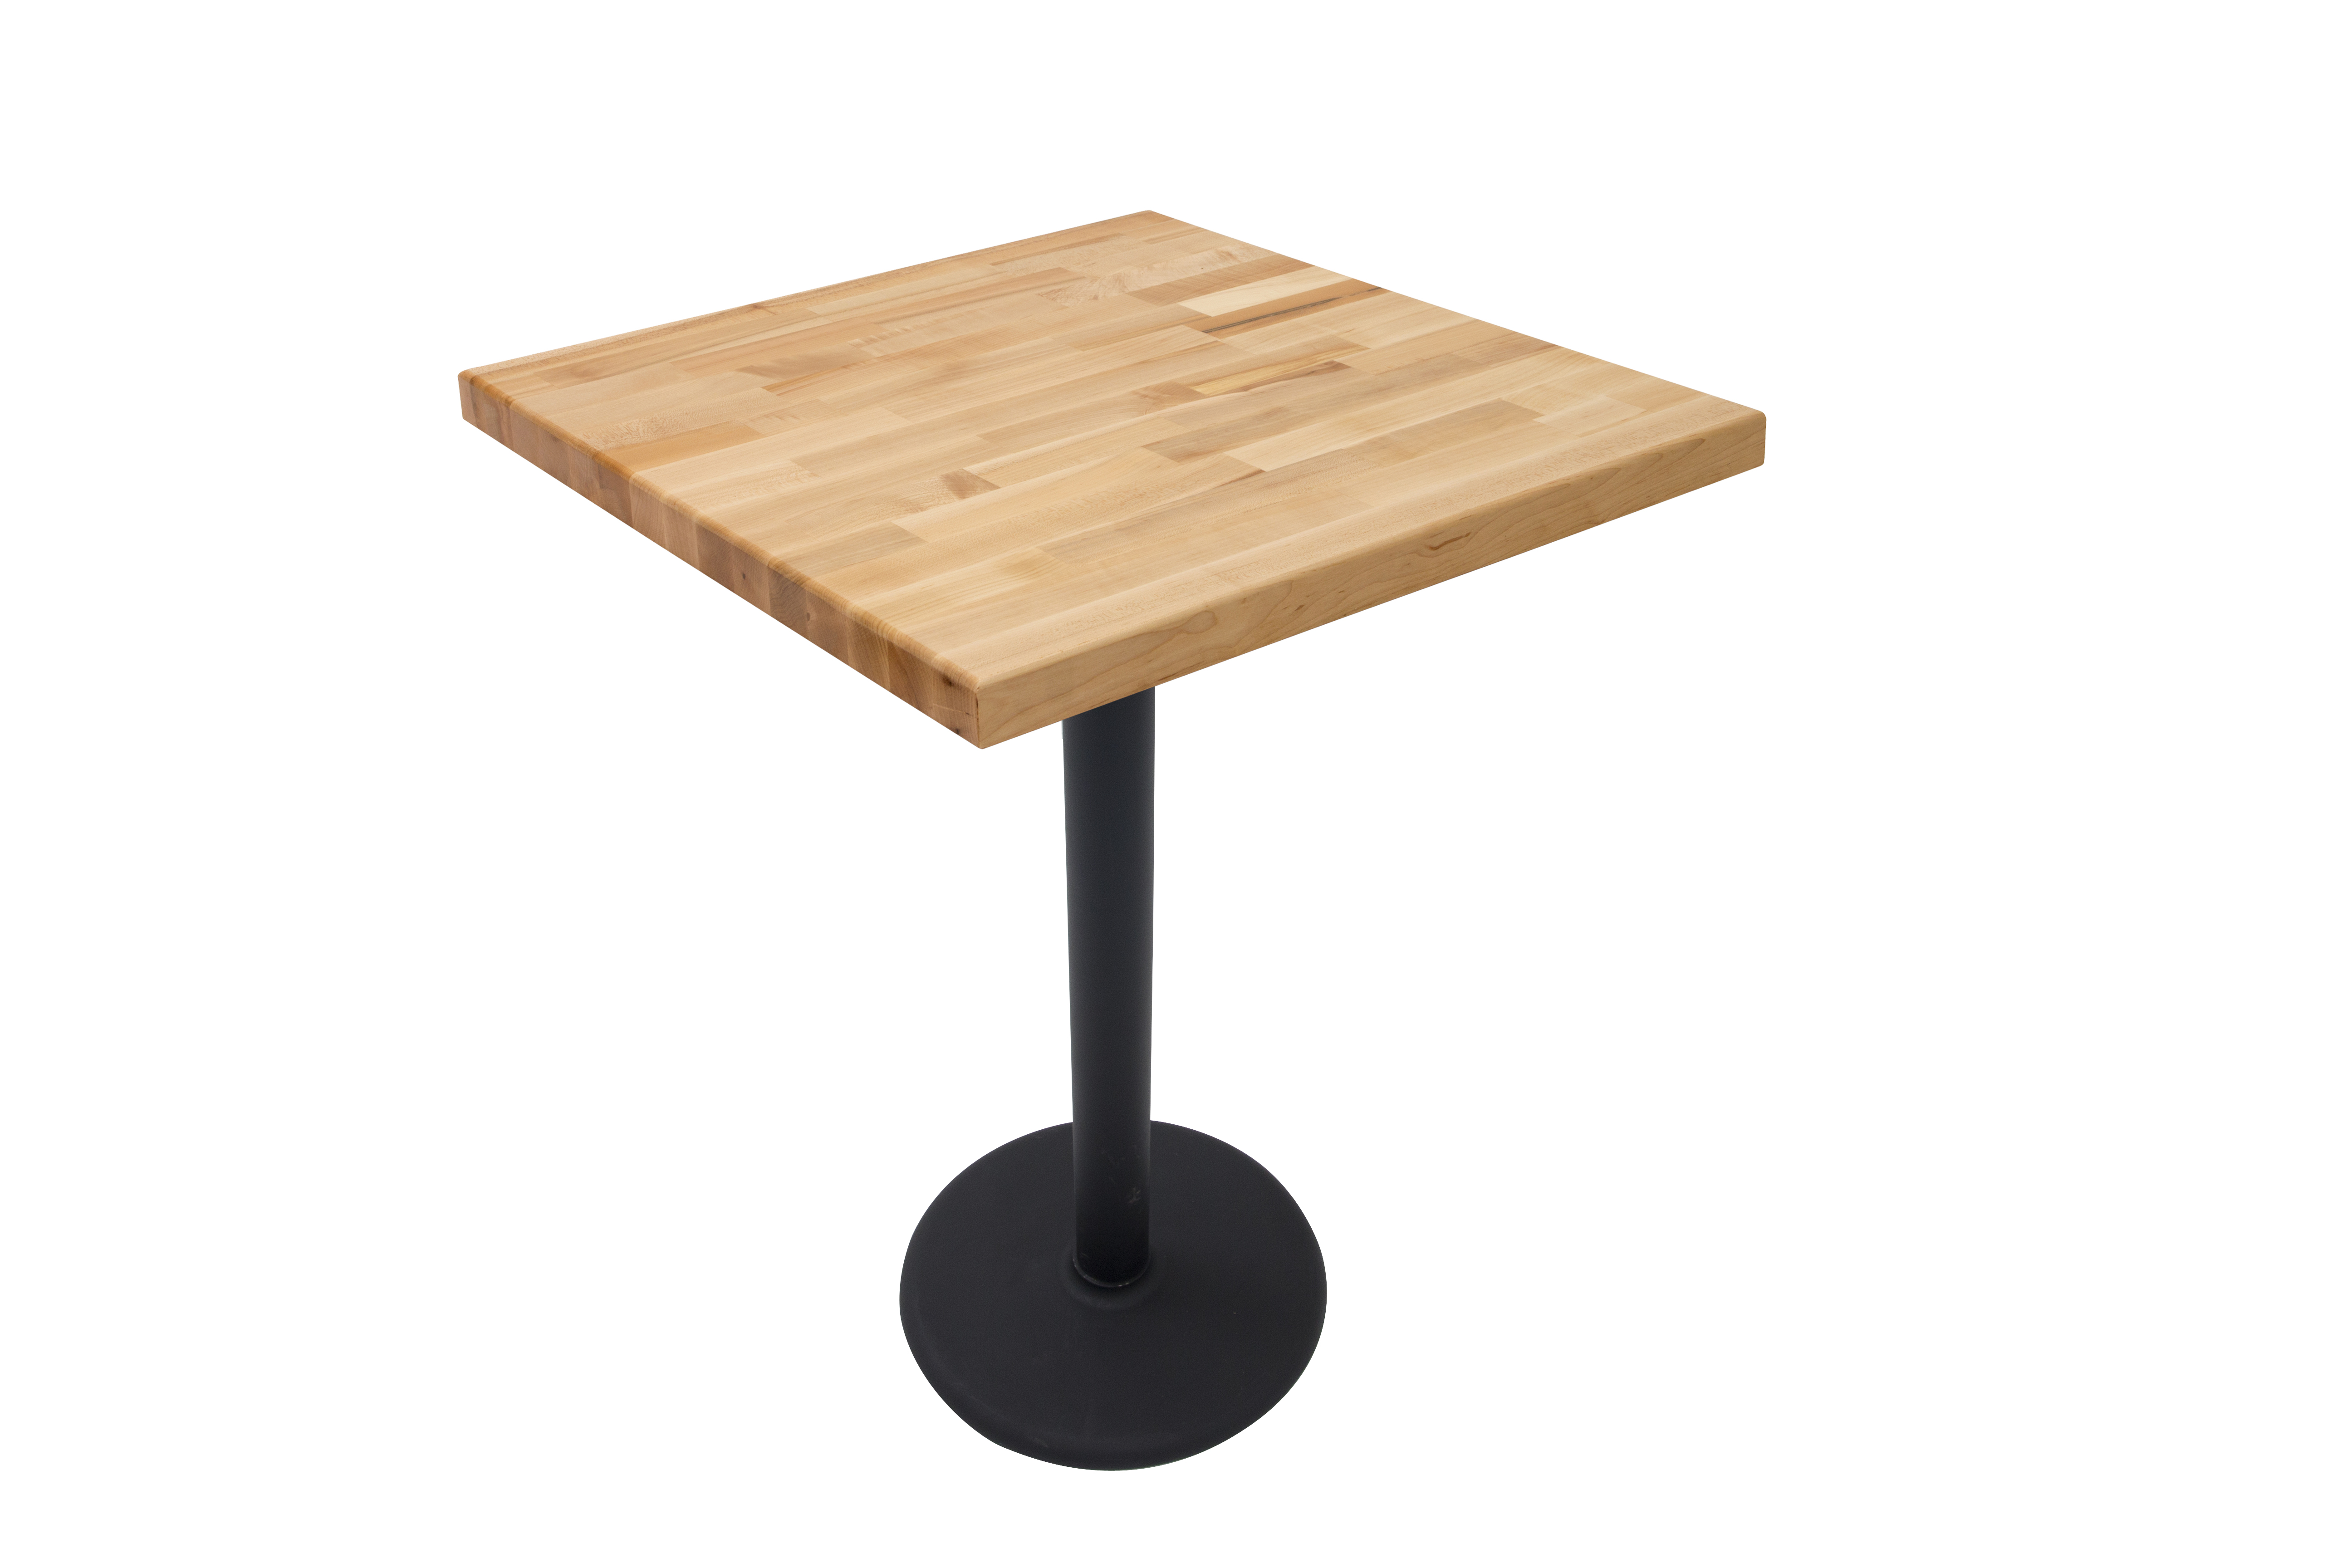 John Boos Maple Blended Grain Butcher Block Table Top on Metal Disc Base